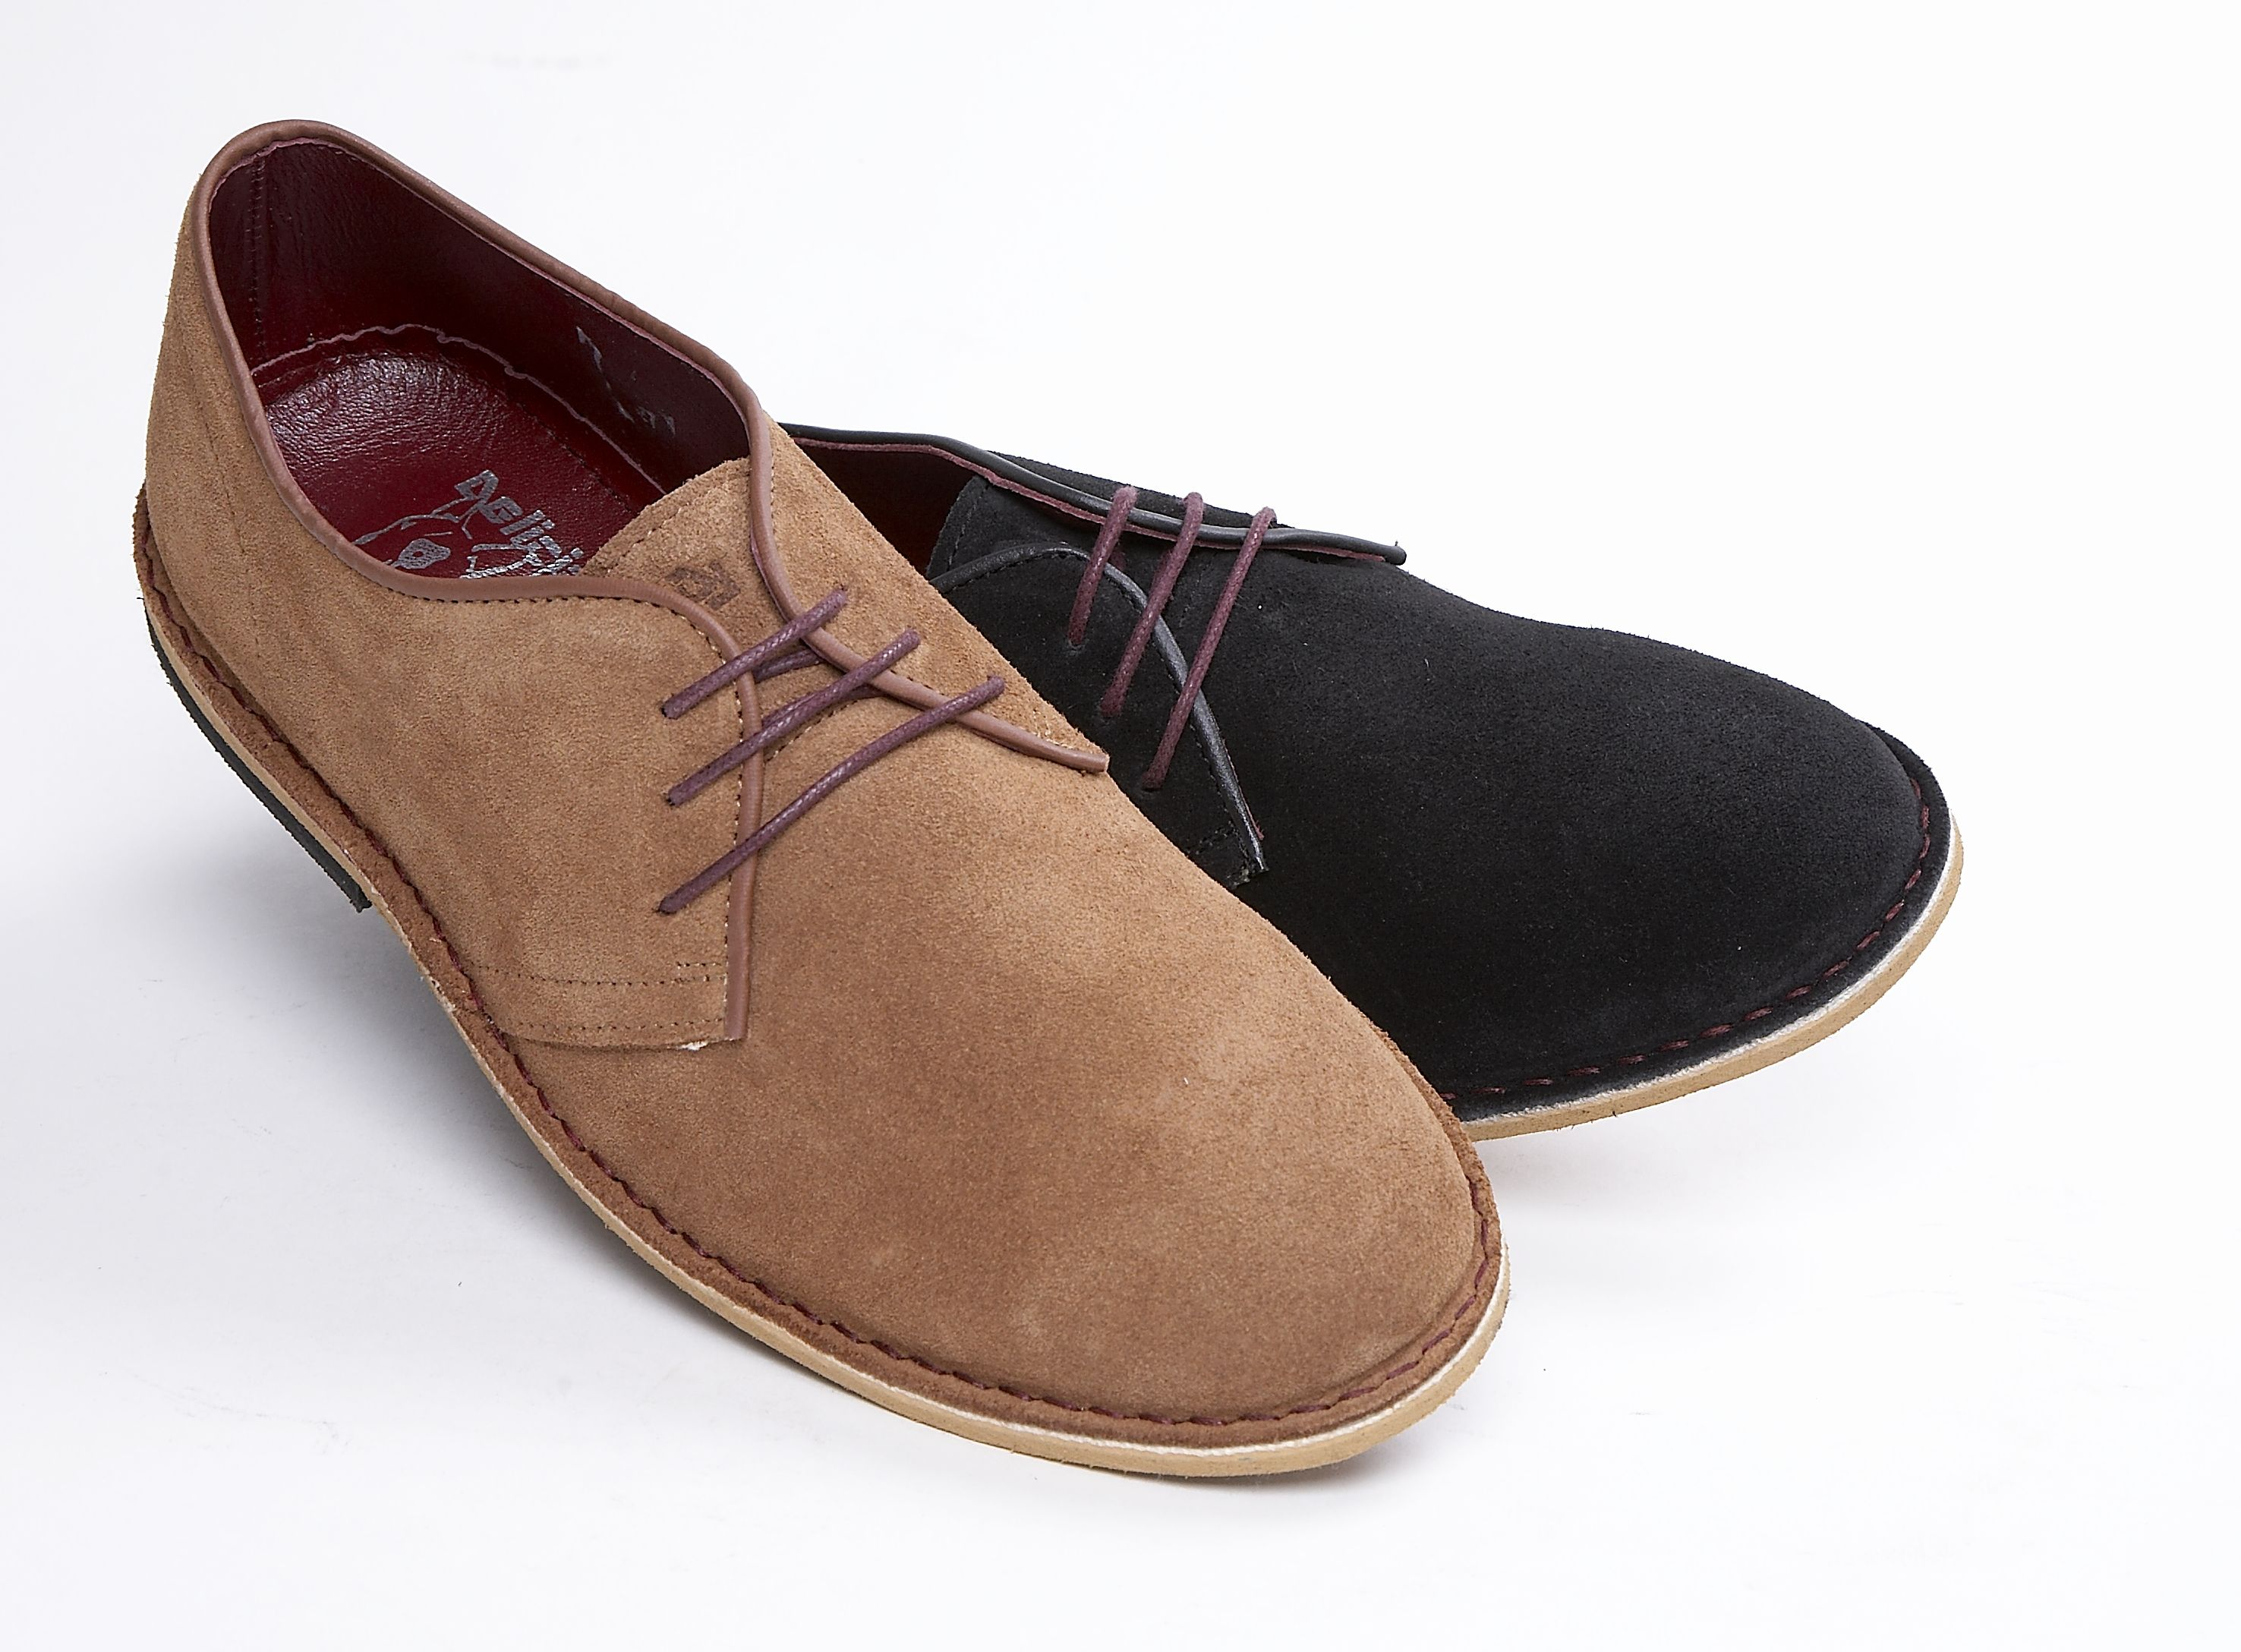 A cheeky two eyelet tie shoe, classic cut stitch down construction. Available in either jet black suede or hot ginger suede. Crimson leather linings and sock. New Delicious double dog-head design logo details  Hardwearing smooth oustole  £60.00